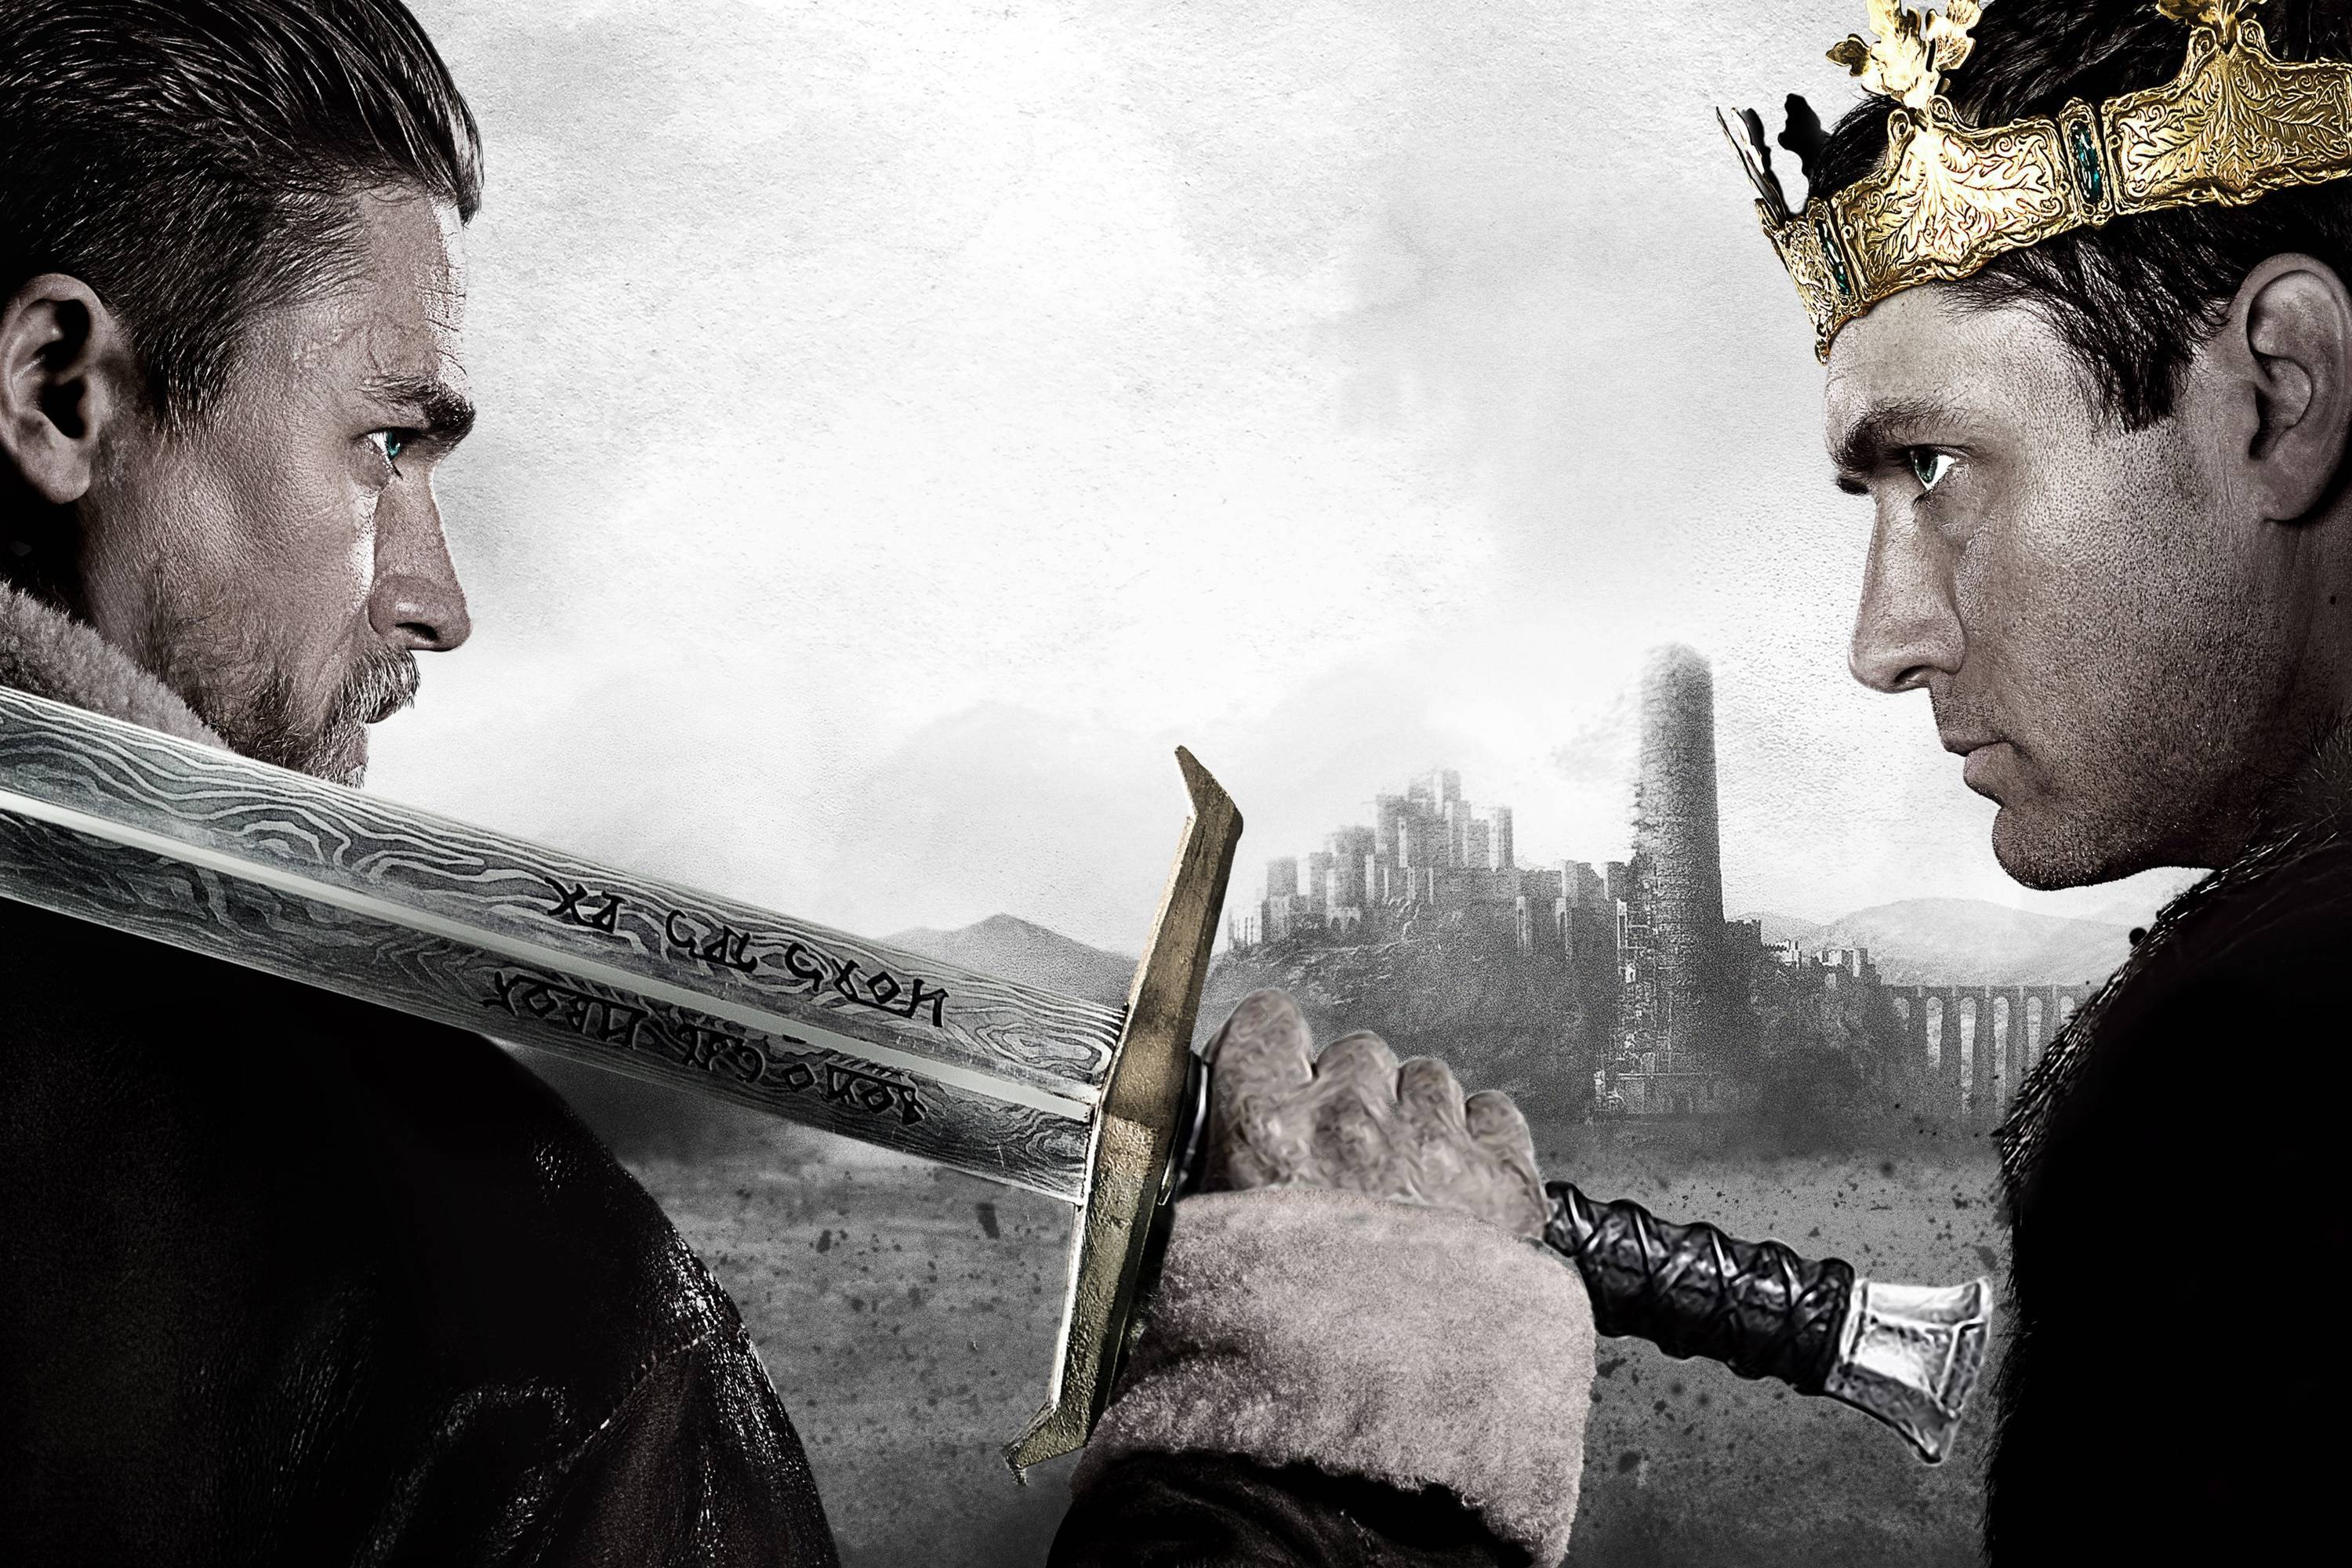 the enduring legend of king arthur Will the real king arthur please rise may 10 king arthur has become an enduring legend with continued grip on popular imagination.